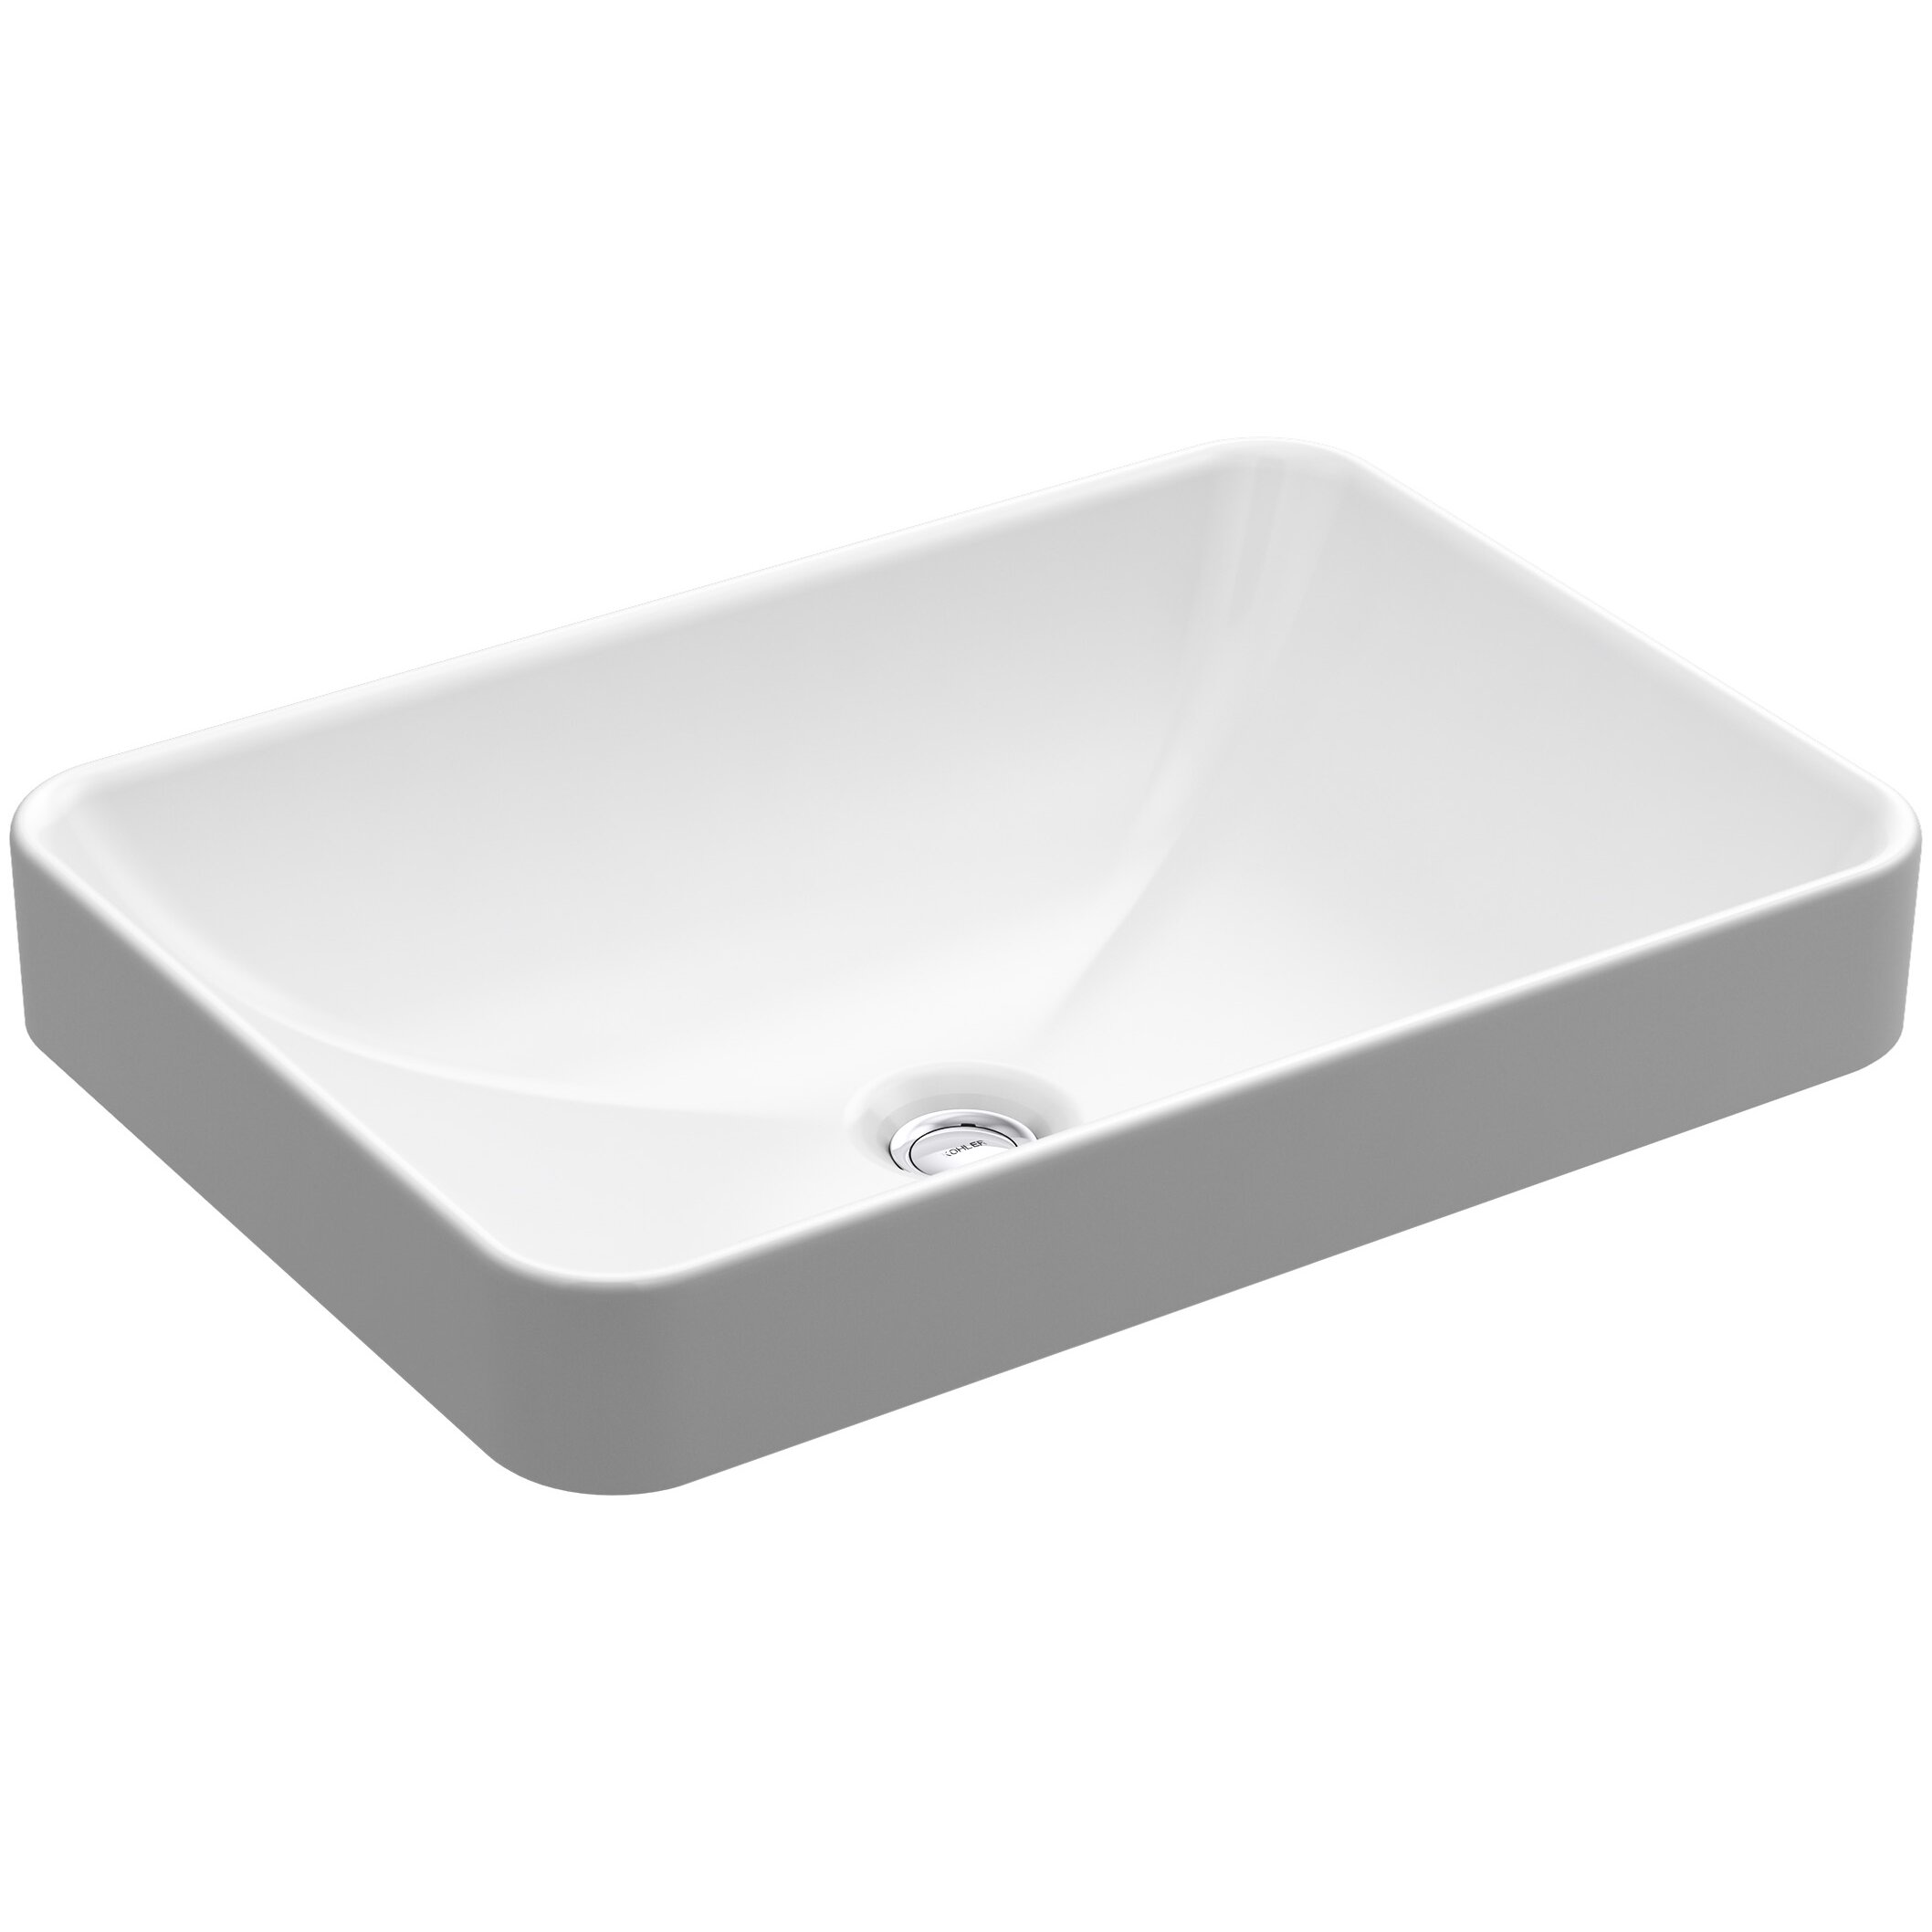 Kohler Vox Rectangle Vessel Above Counter Bathroom Sink In White Amp Reviews Wayfair